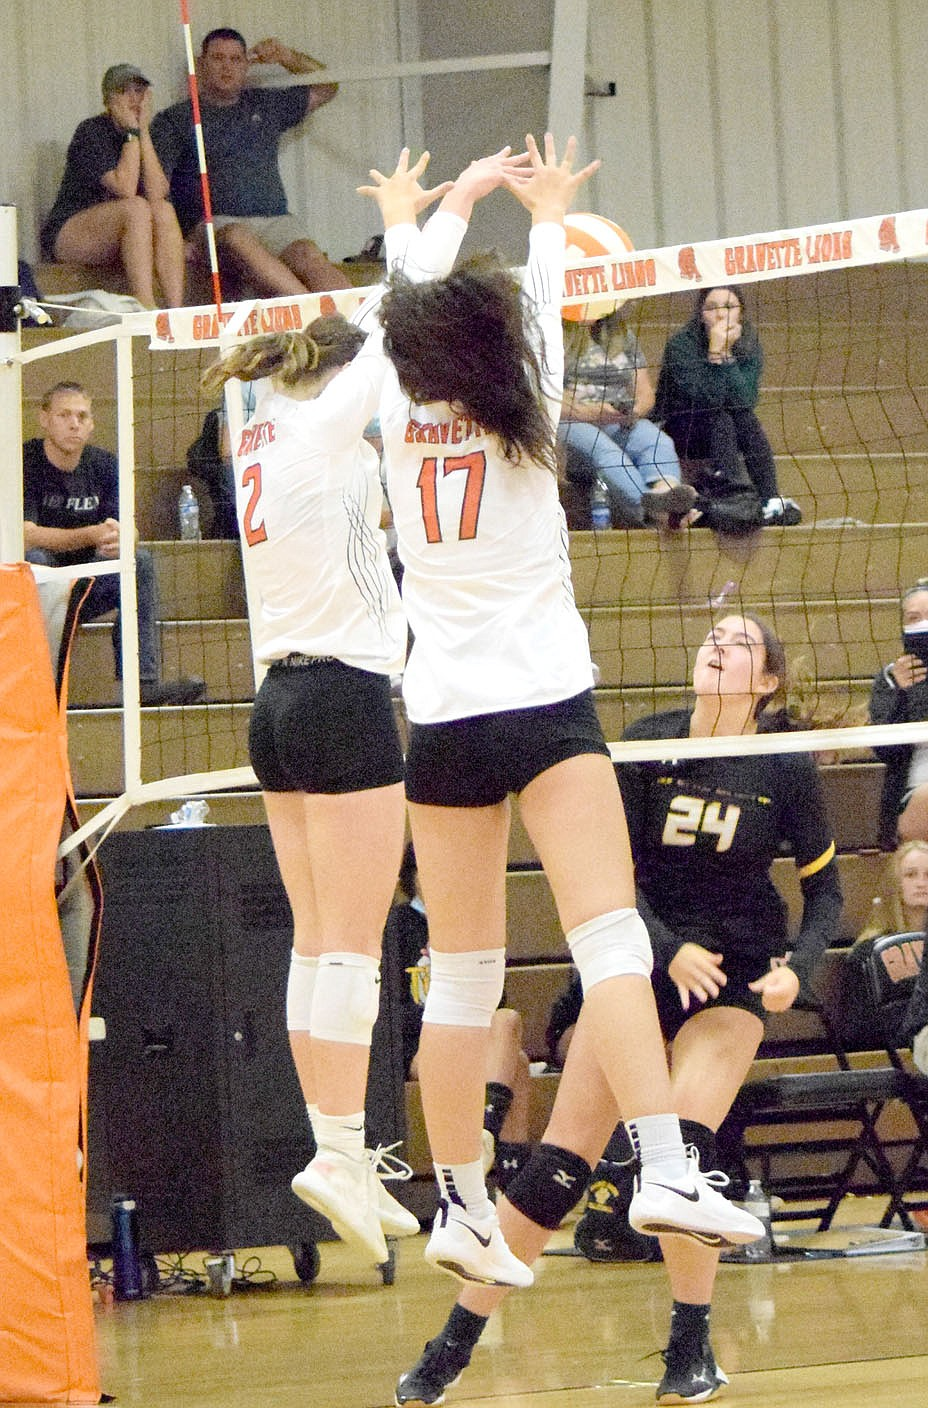 Westside Eagle Observer/MIKE ECKELS  Working together, Lady Lion Abby Smith (2) and Ella Pinches (17) deflect the ball back over the net into Lady Tiger territory during the second set of the Gravette-Prairie Grove varsity match at the Competition Gym in Gravette Thursday night. The Lady Lions took its second win of the 2021 season in three straight sets over the Lady Tigers.